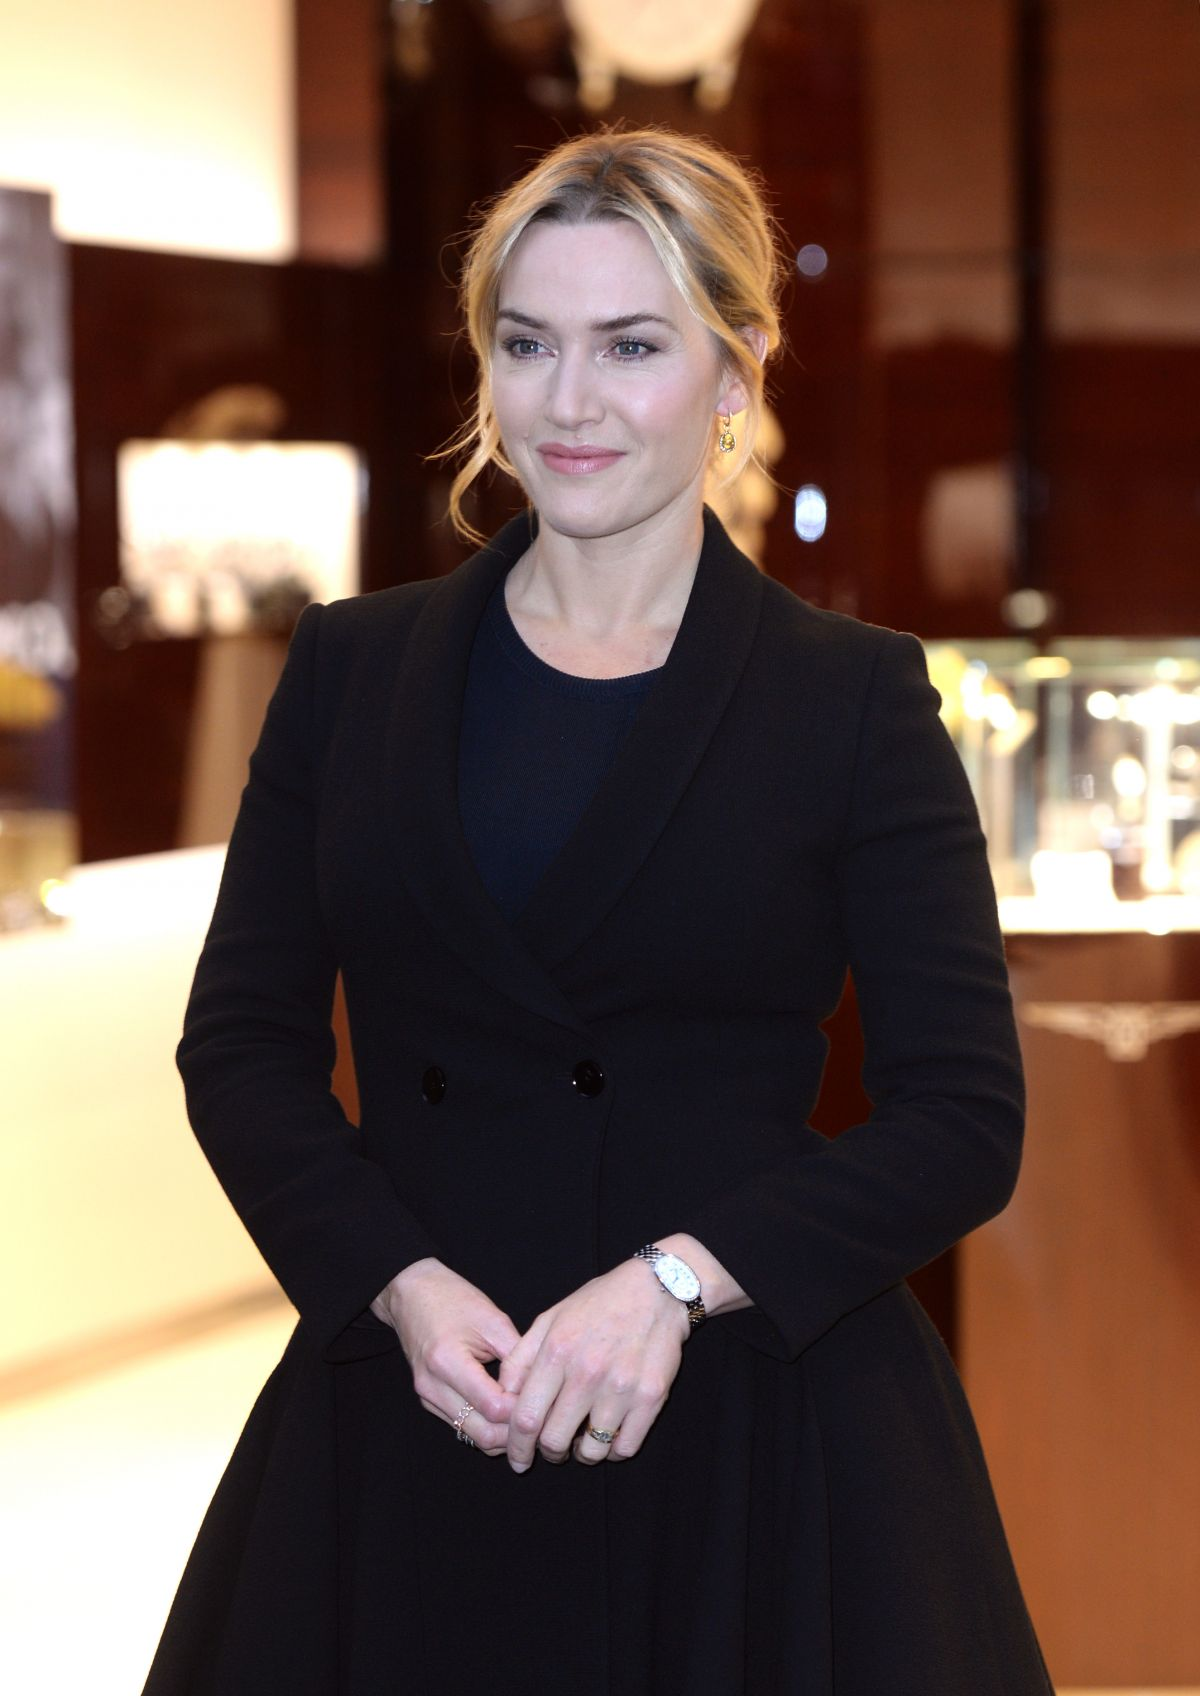 KATE WINSLET at UK Lon... Kate Winslet